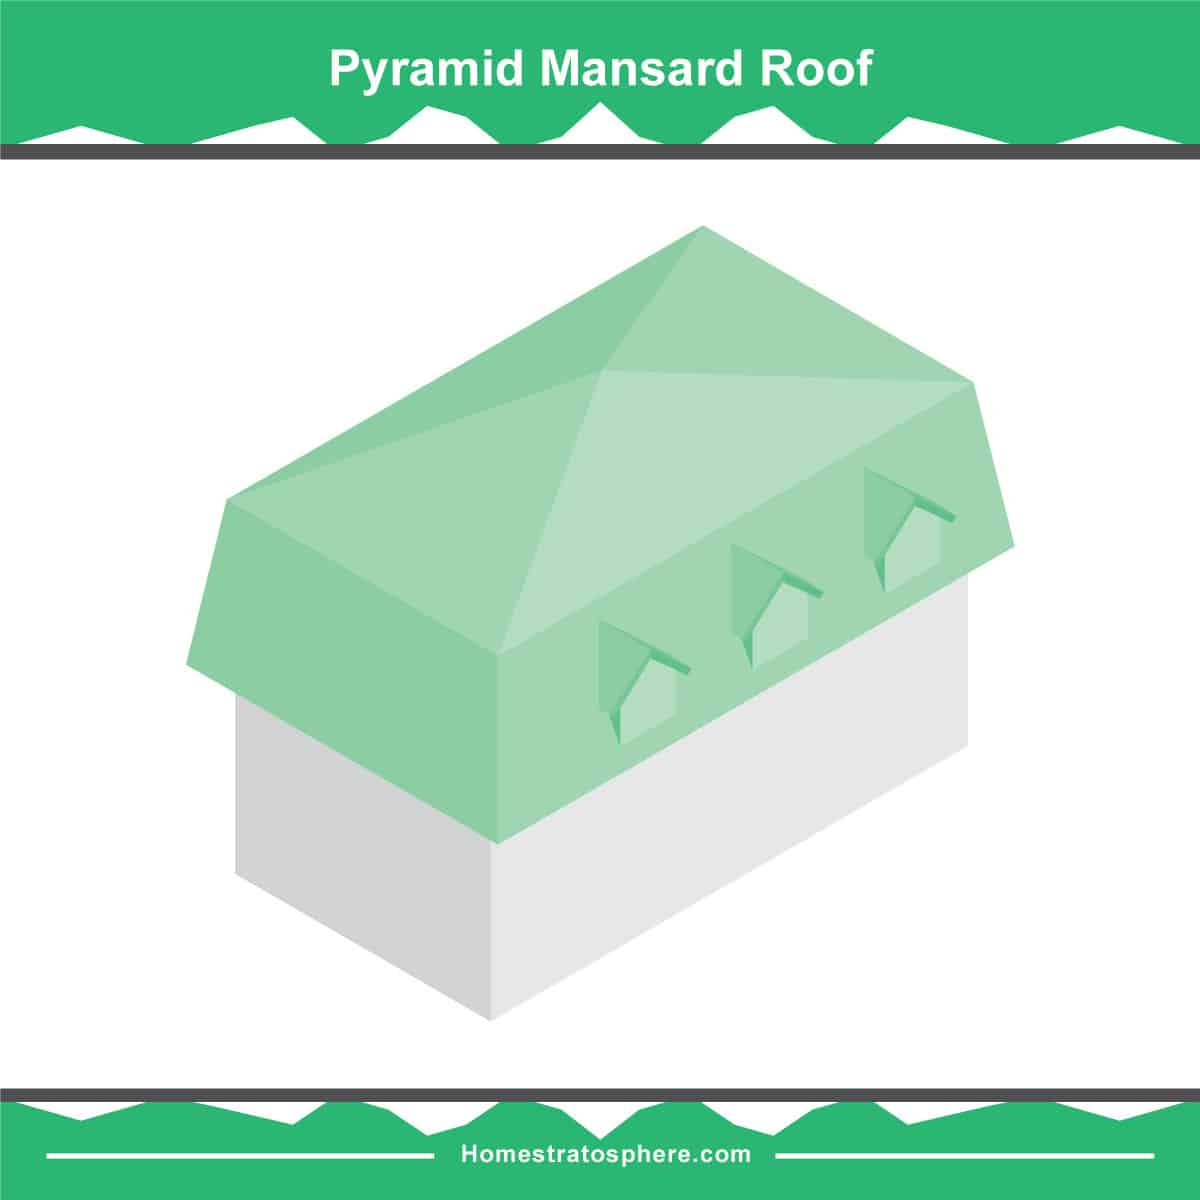 Pyeramid mansard roof diagram